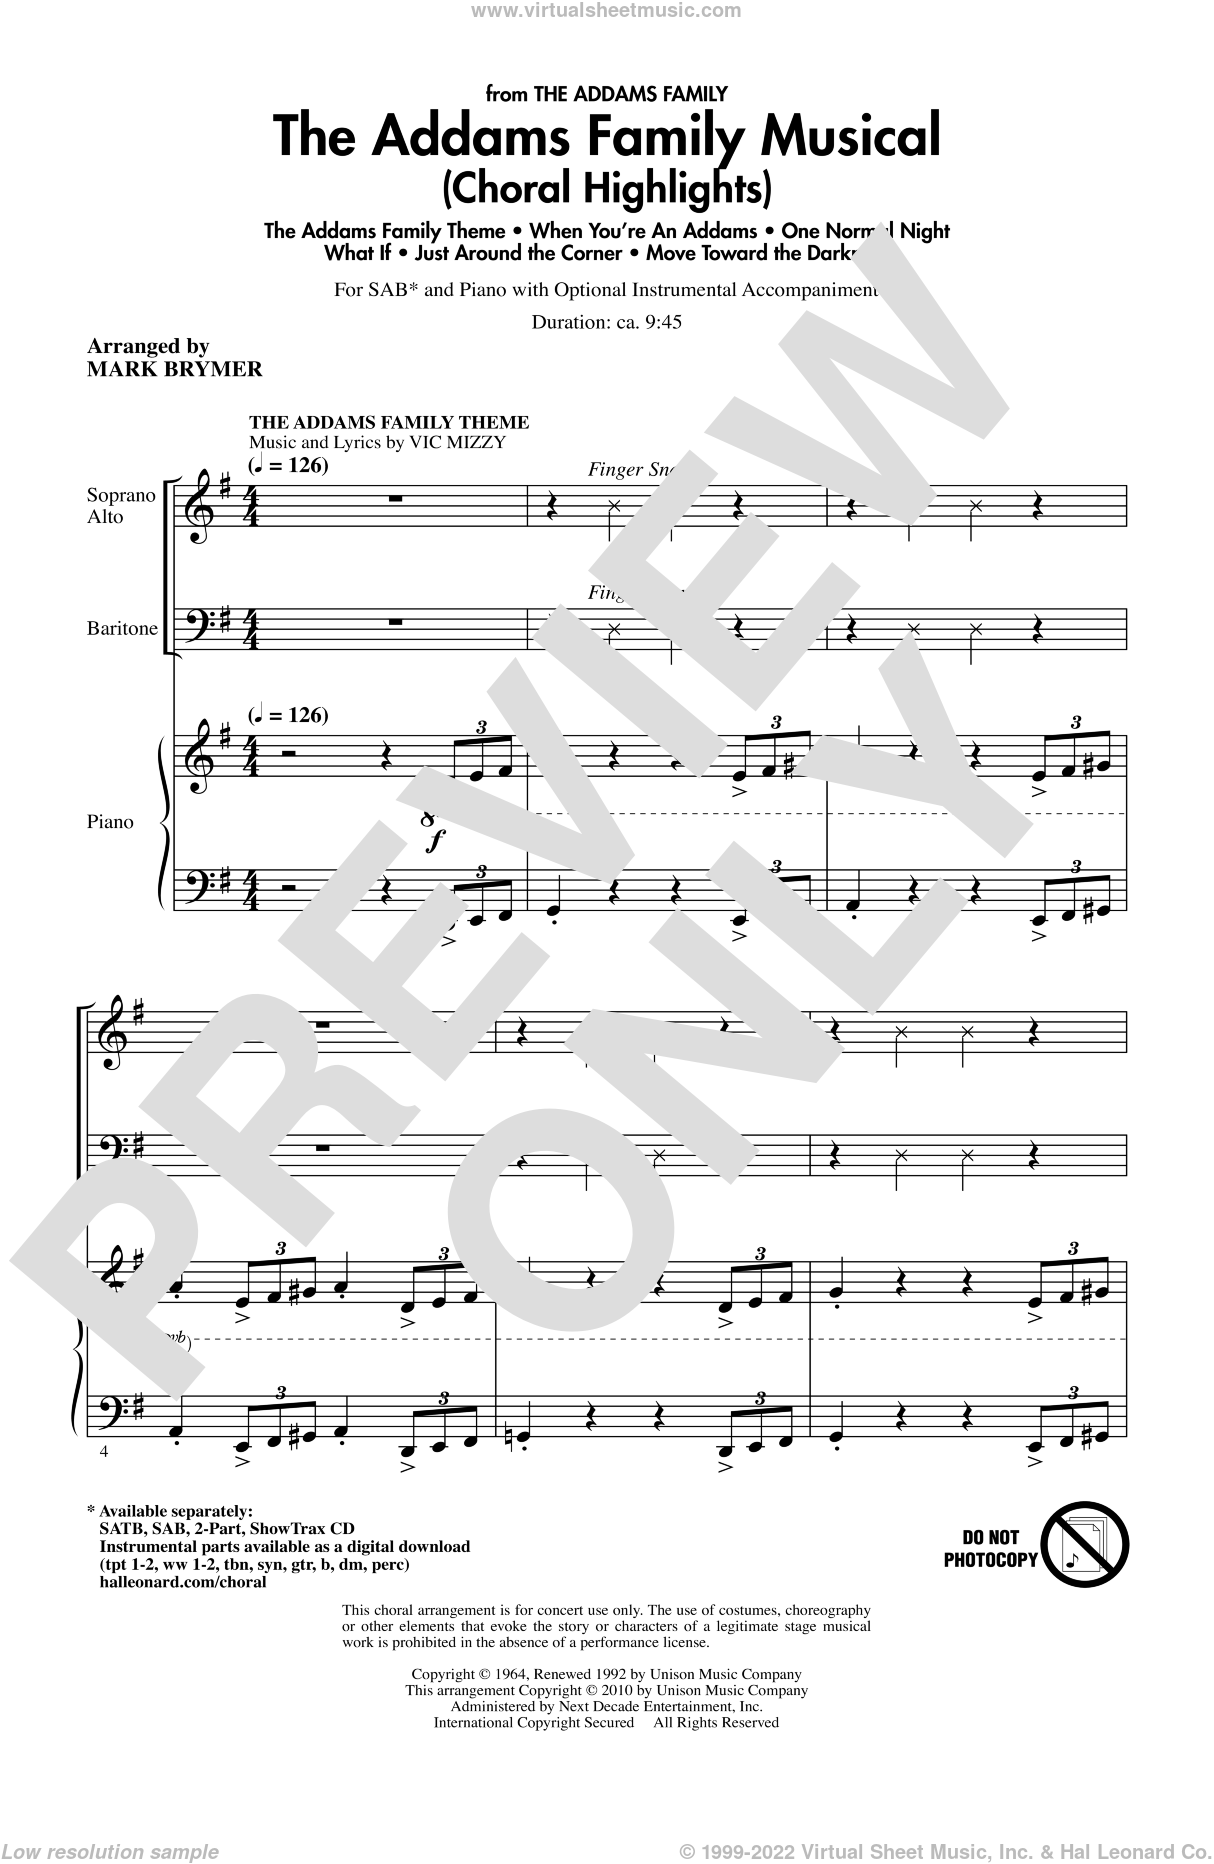 The Addams Family Musical (Choral Highlights) sheet music for choir and piano (SAB) by Mark Brymer